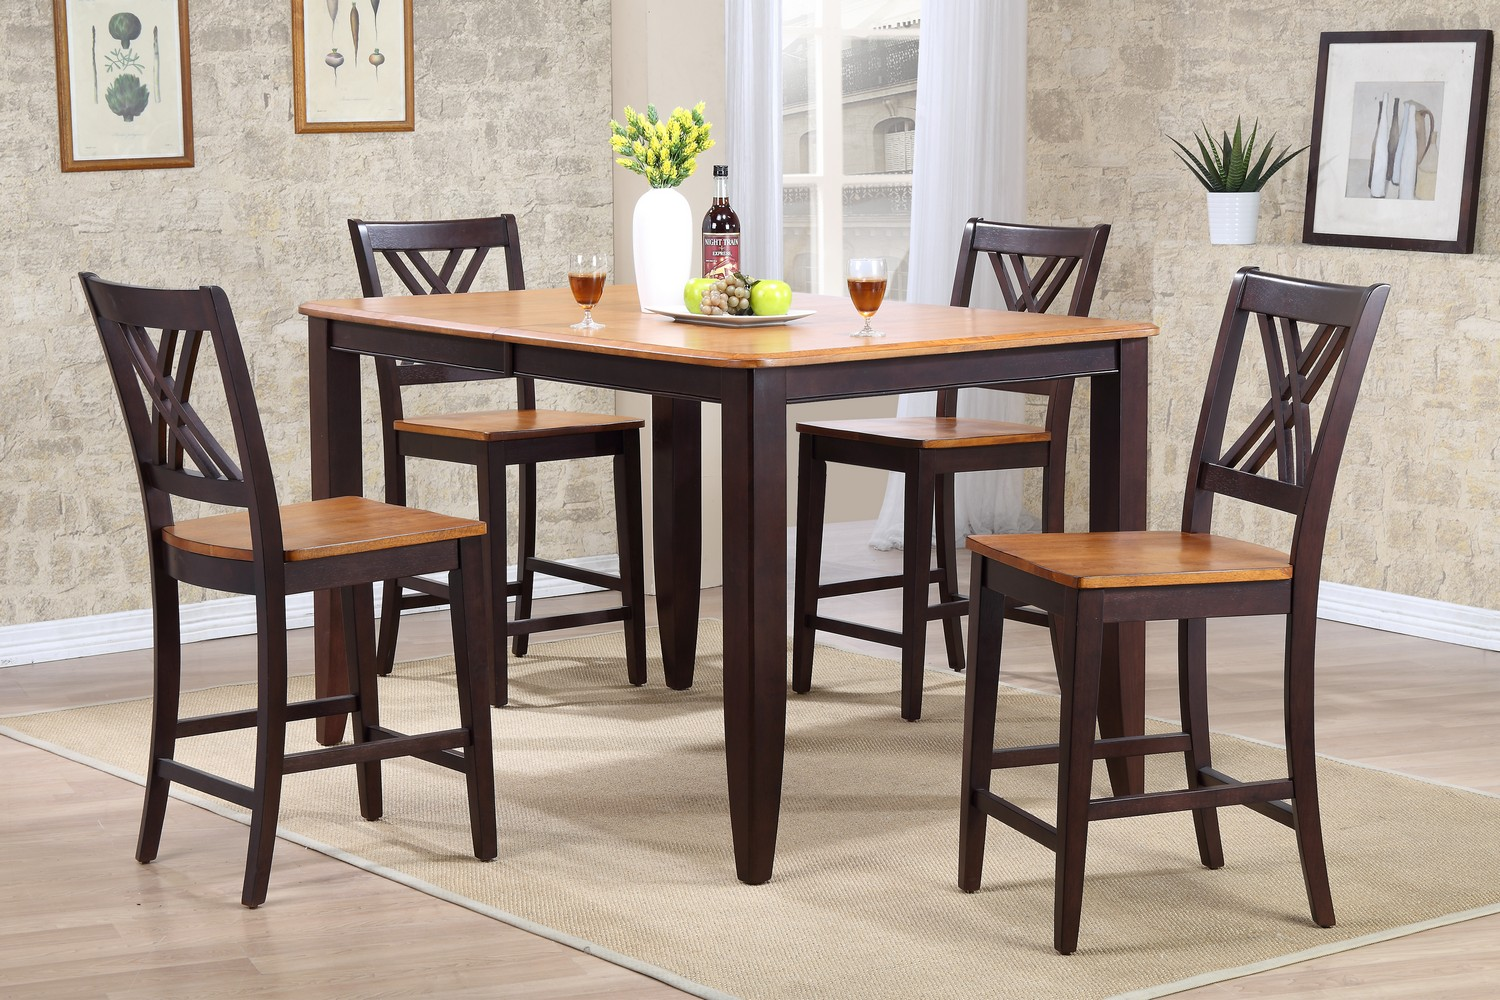 Iconic Furniture RT78 Whiskey/Mocha Double X- Back Counter Height Dining Set